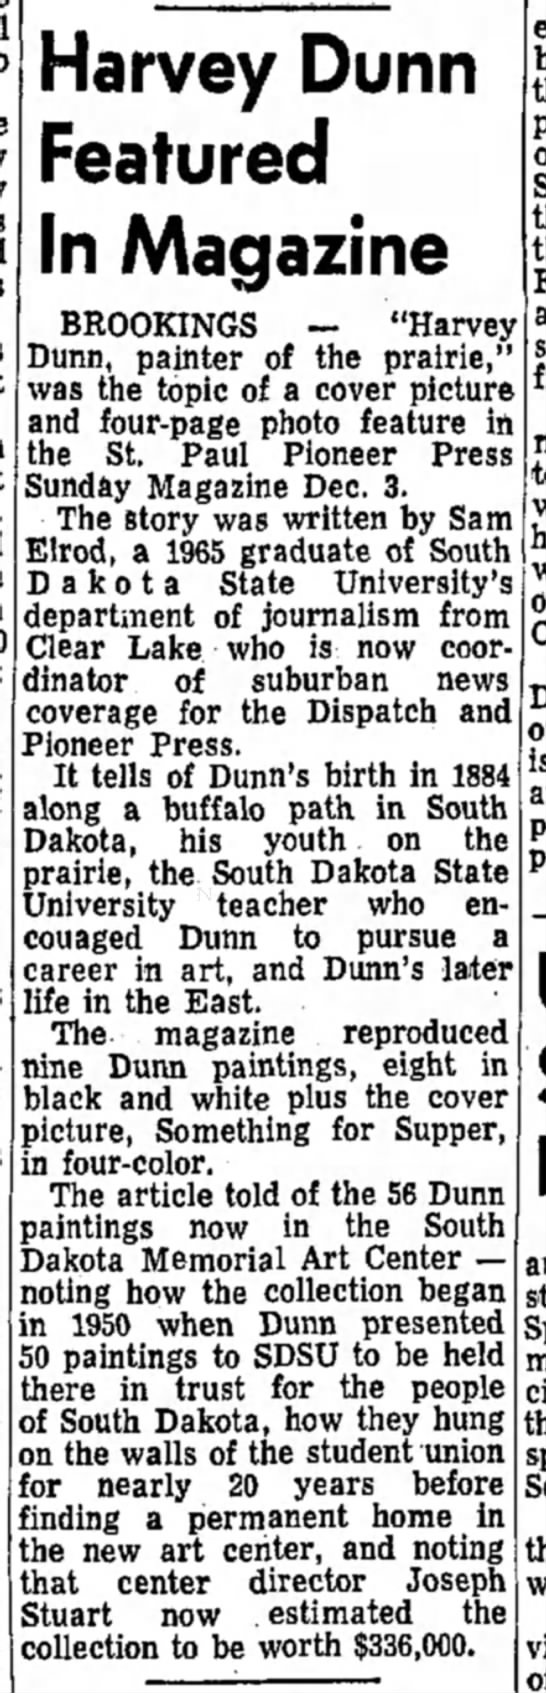 Harvey Dunn in Mag, The Daily republic, 15 Dec 1972 -